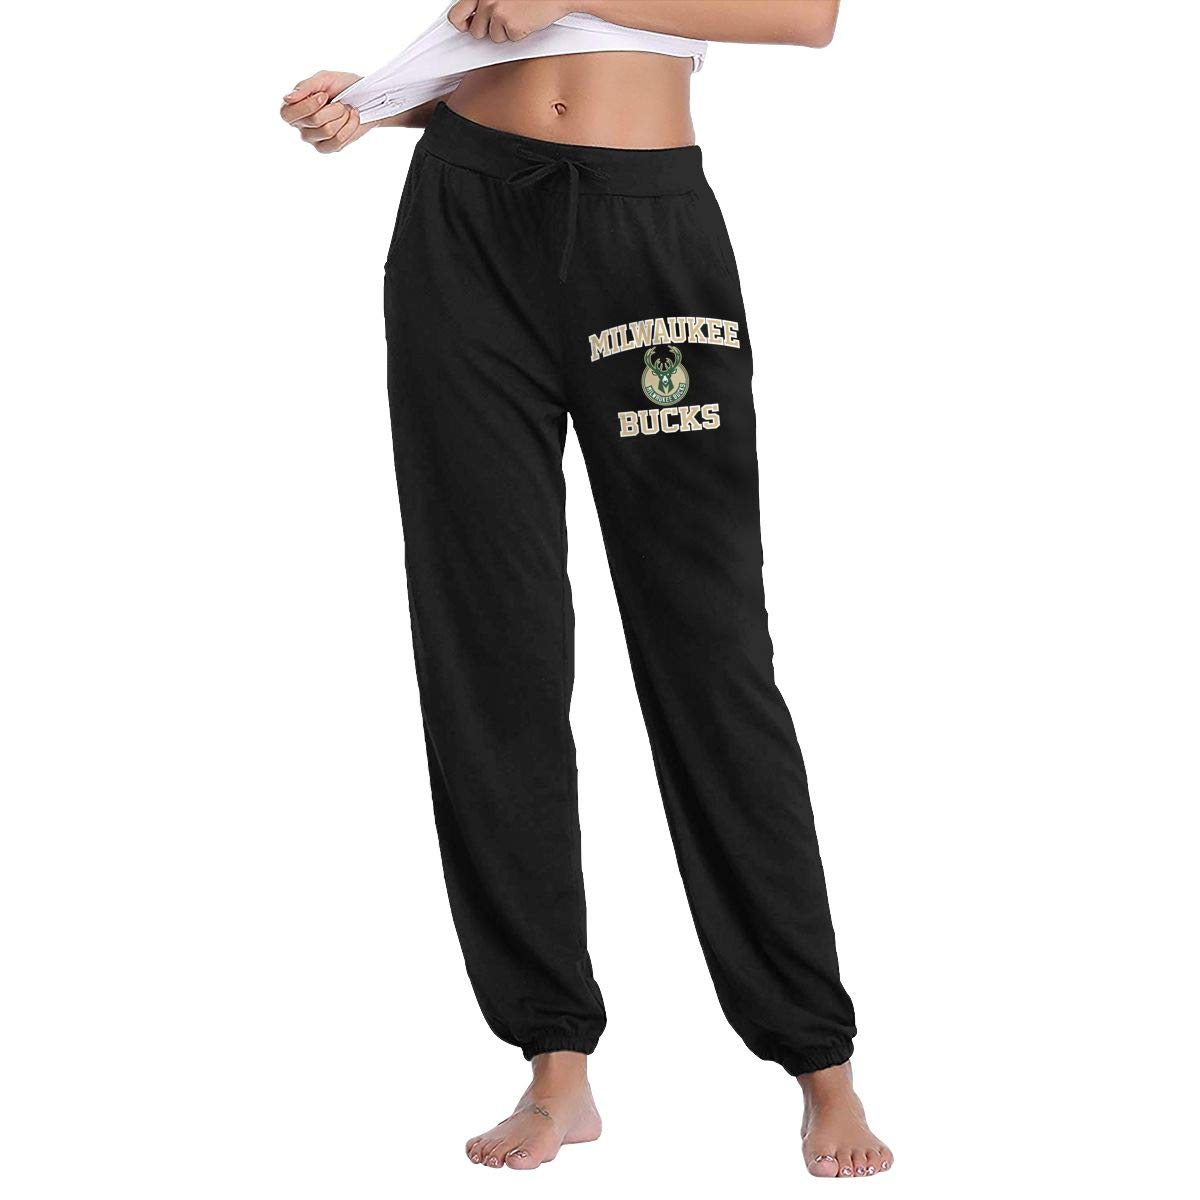 Black XL GavDon Women's MilwaukeeBucksLogoGreg Monroe Casual Sweatpants Yoga Jogger Lounge Sweat Pants with Pockets